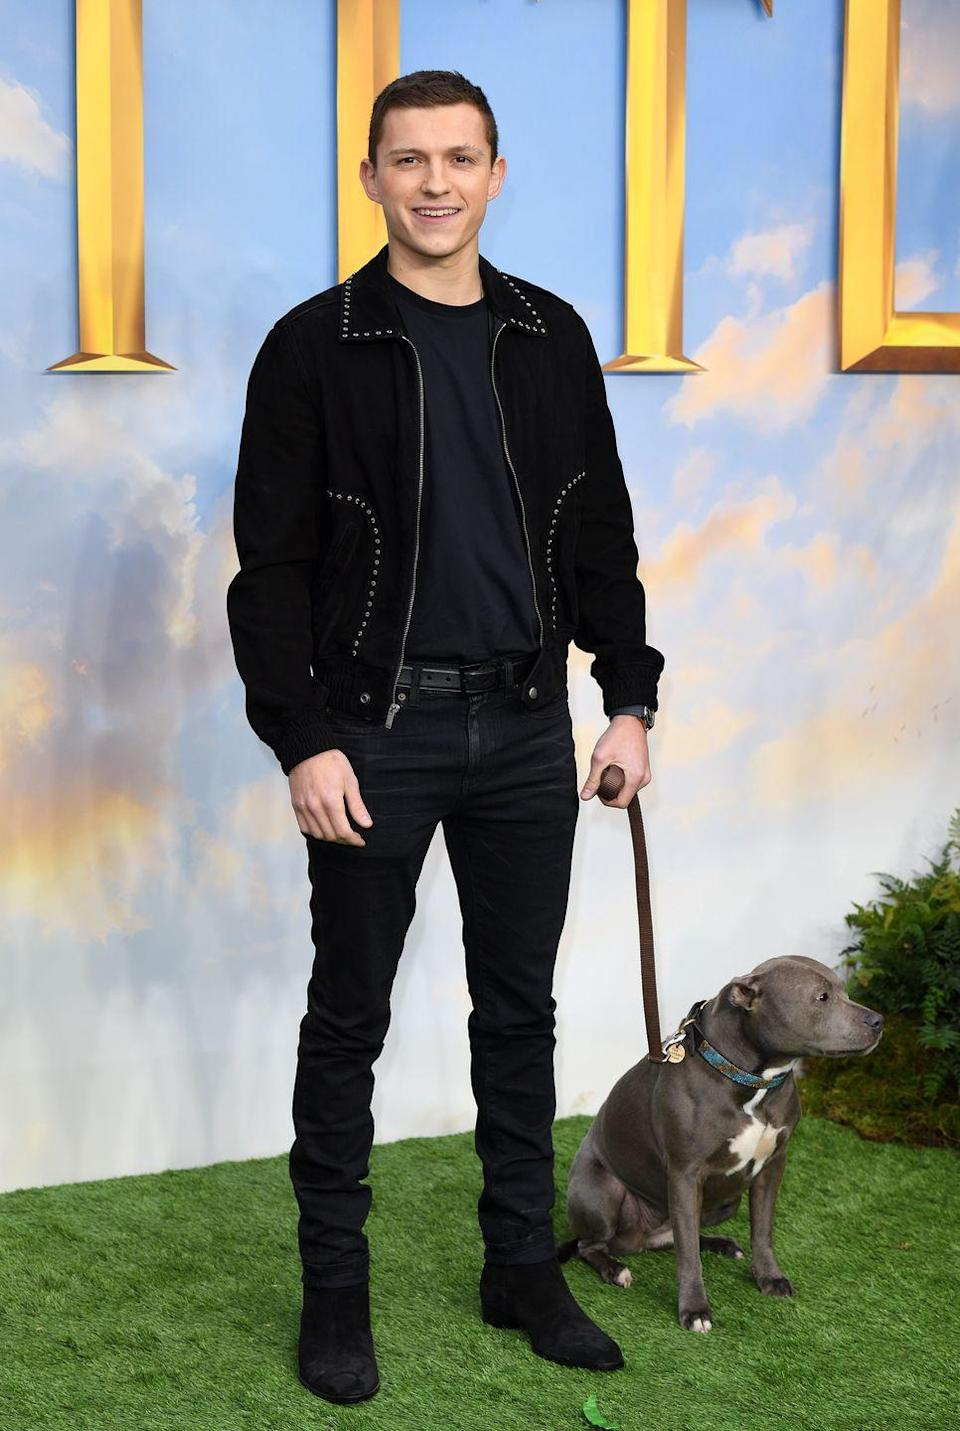 <p>All-black everything is always a winning look, particularly when it's elevated by a statement suede jacket and offset with a cute (if not slightly nervous-looking) dog in a complementary shade.</p>